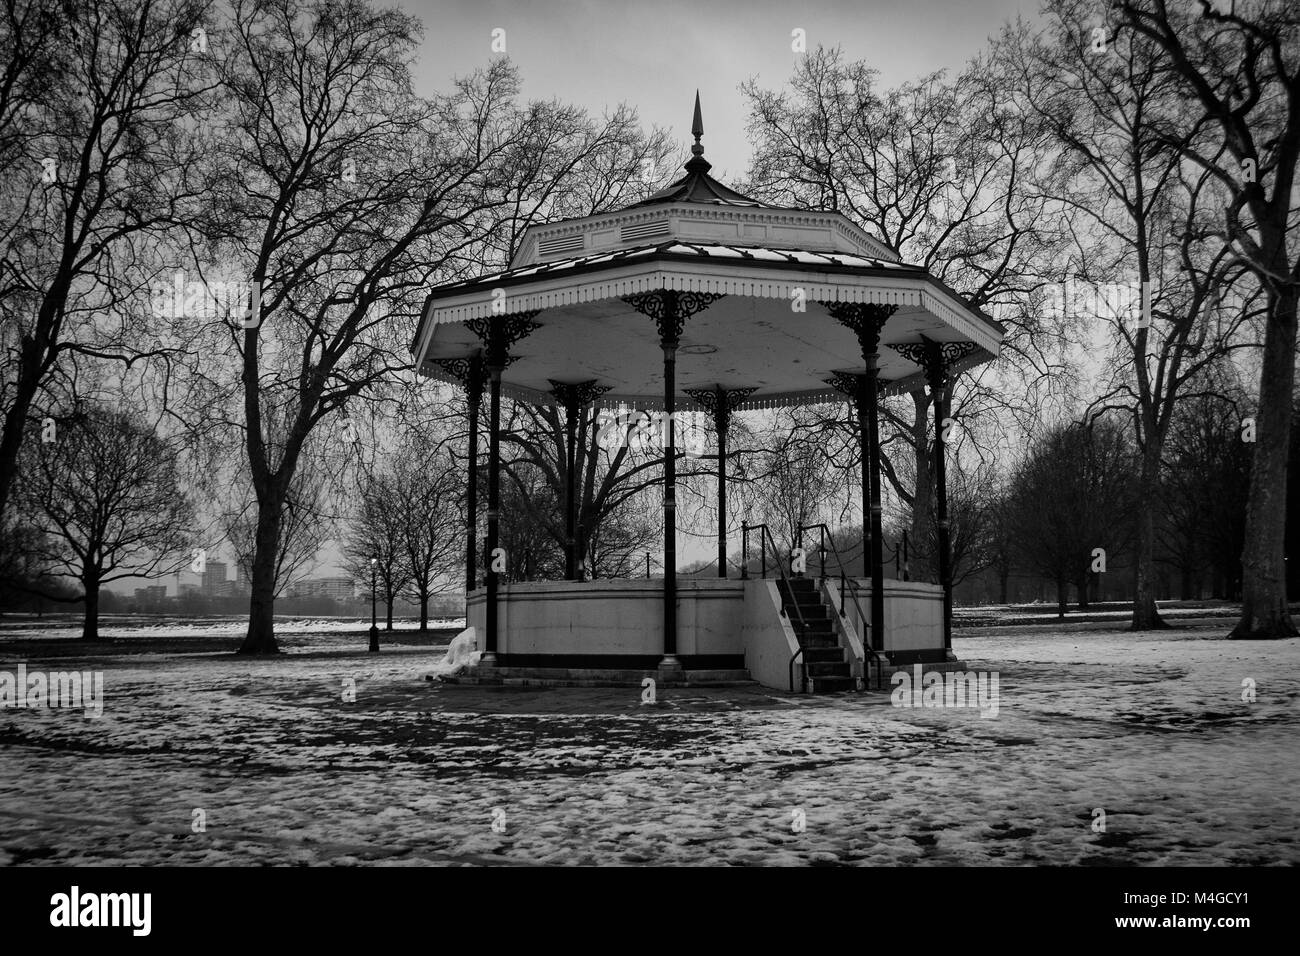 Black & White Photograph of a bandstand in Hyde Park in the winter time, London, England, UK. Credit: London - Stock Image